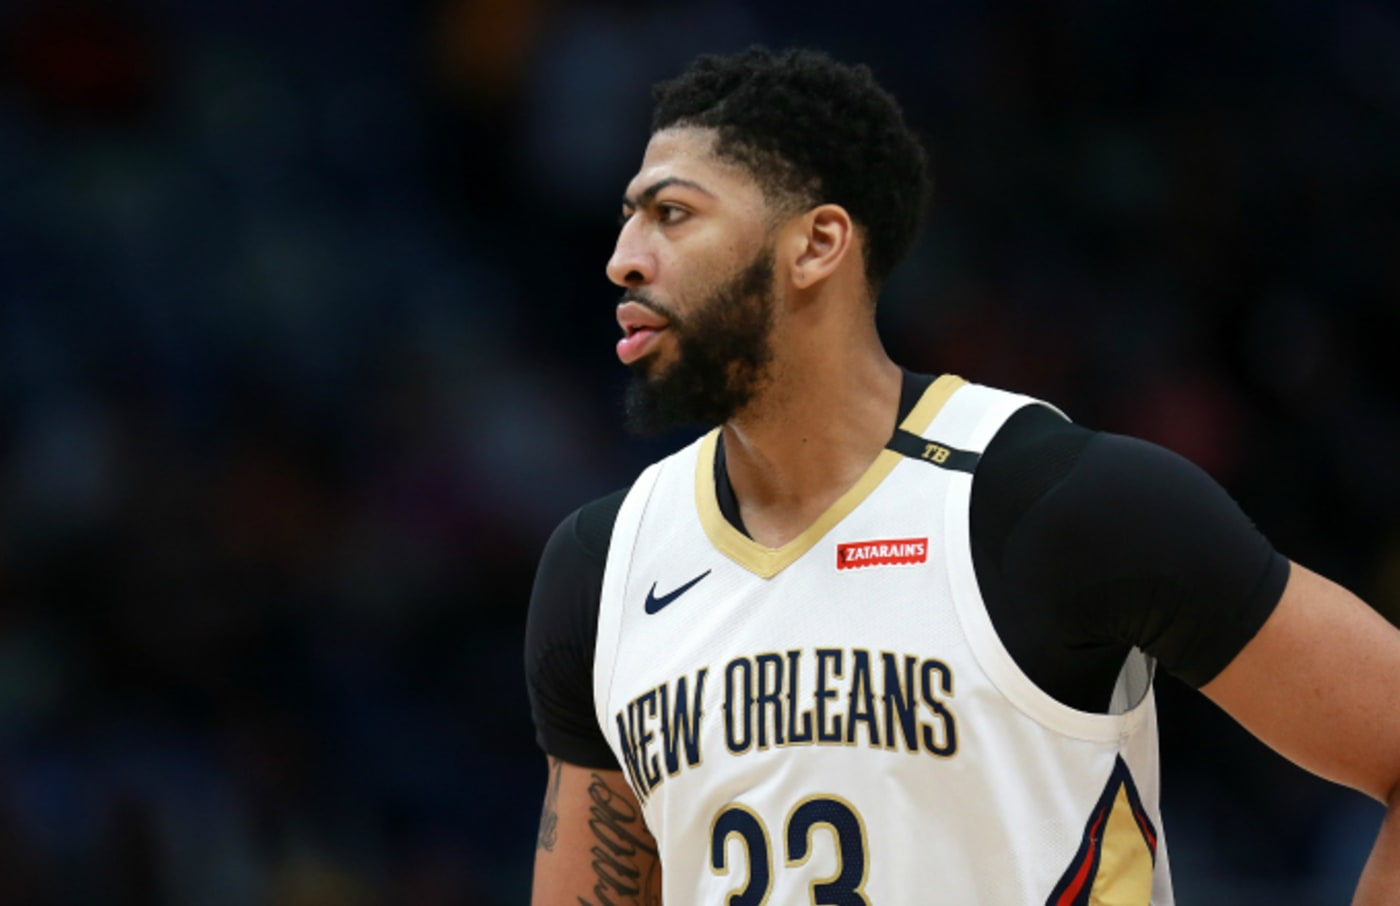 Anthony Davis #23 of the New Orleans Pelicans